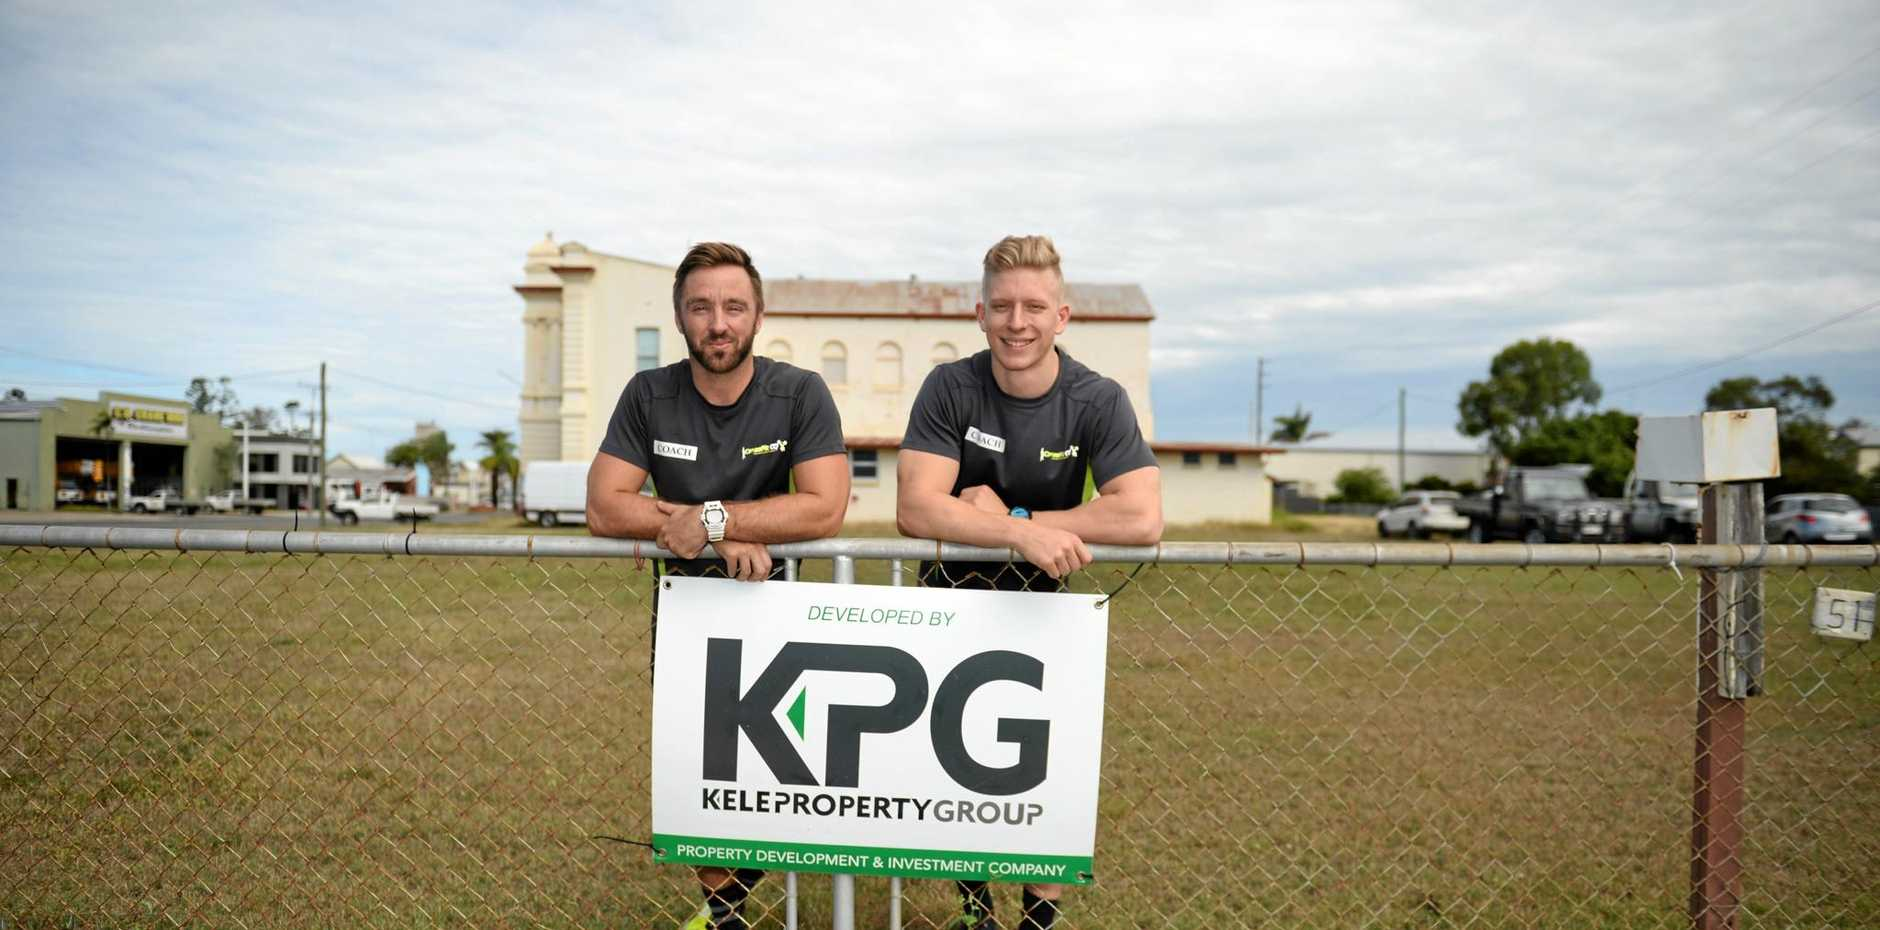 FITNESS CENTRE: Sean O'Neill and Jake Standen at the site of a new gym. INSET: Artist's impressions of the health and fitness precinct.